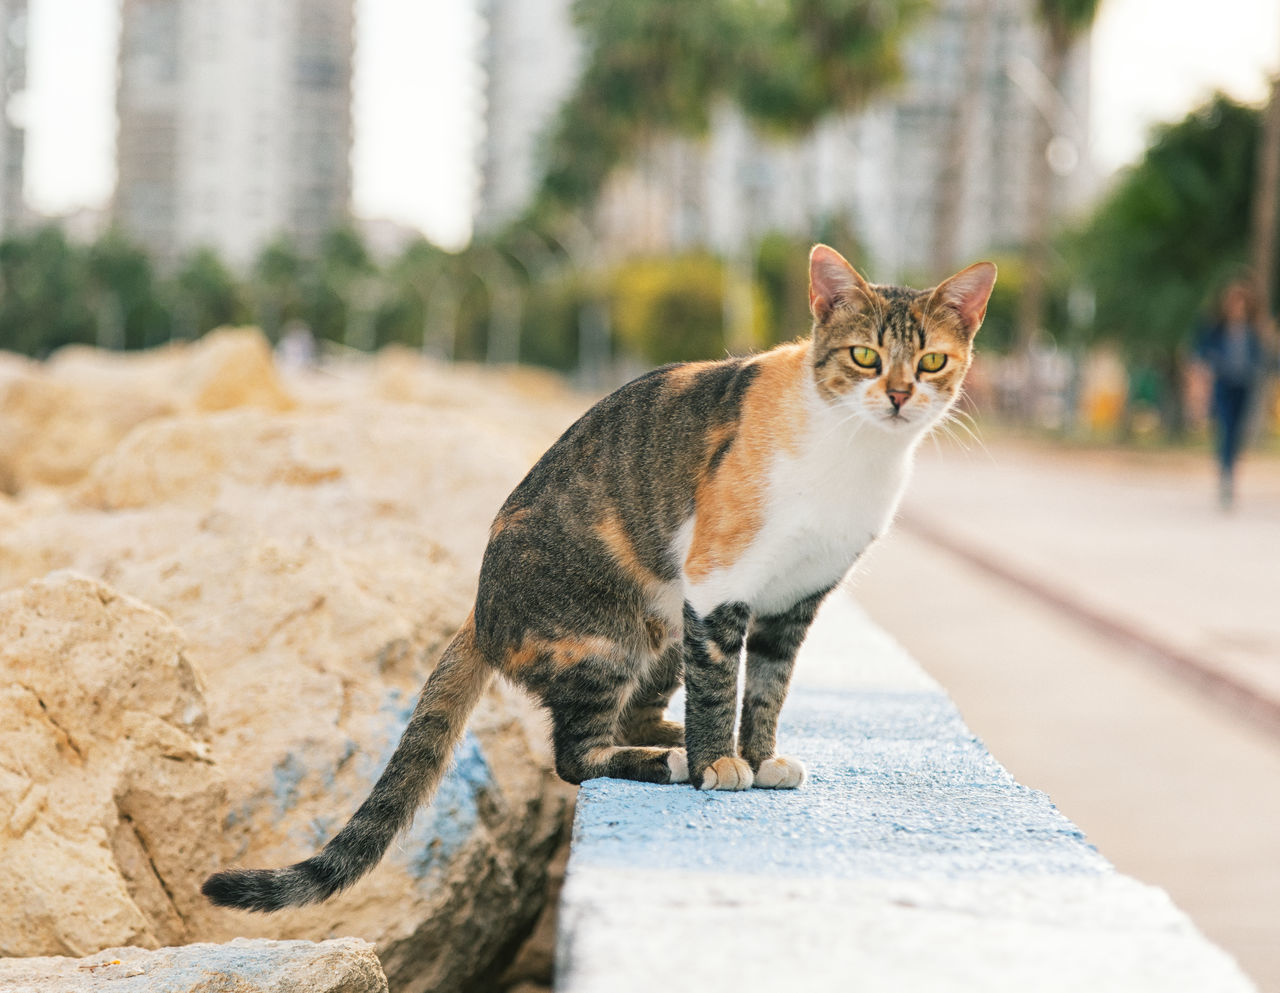 Street Cats Animal Themes Boulder Cats Close-up Coastline Day Domestic Animals Domestic Cat Feline Feline Portraits Focus On Foreground Mammal Mersin Turkey No People One Animal Outdoors Pets Rock Formation Street Cats